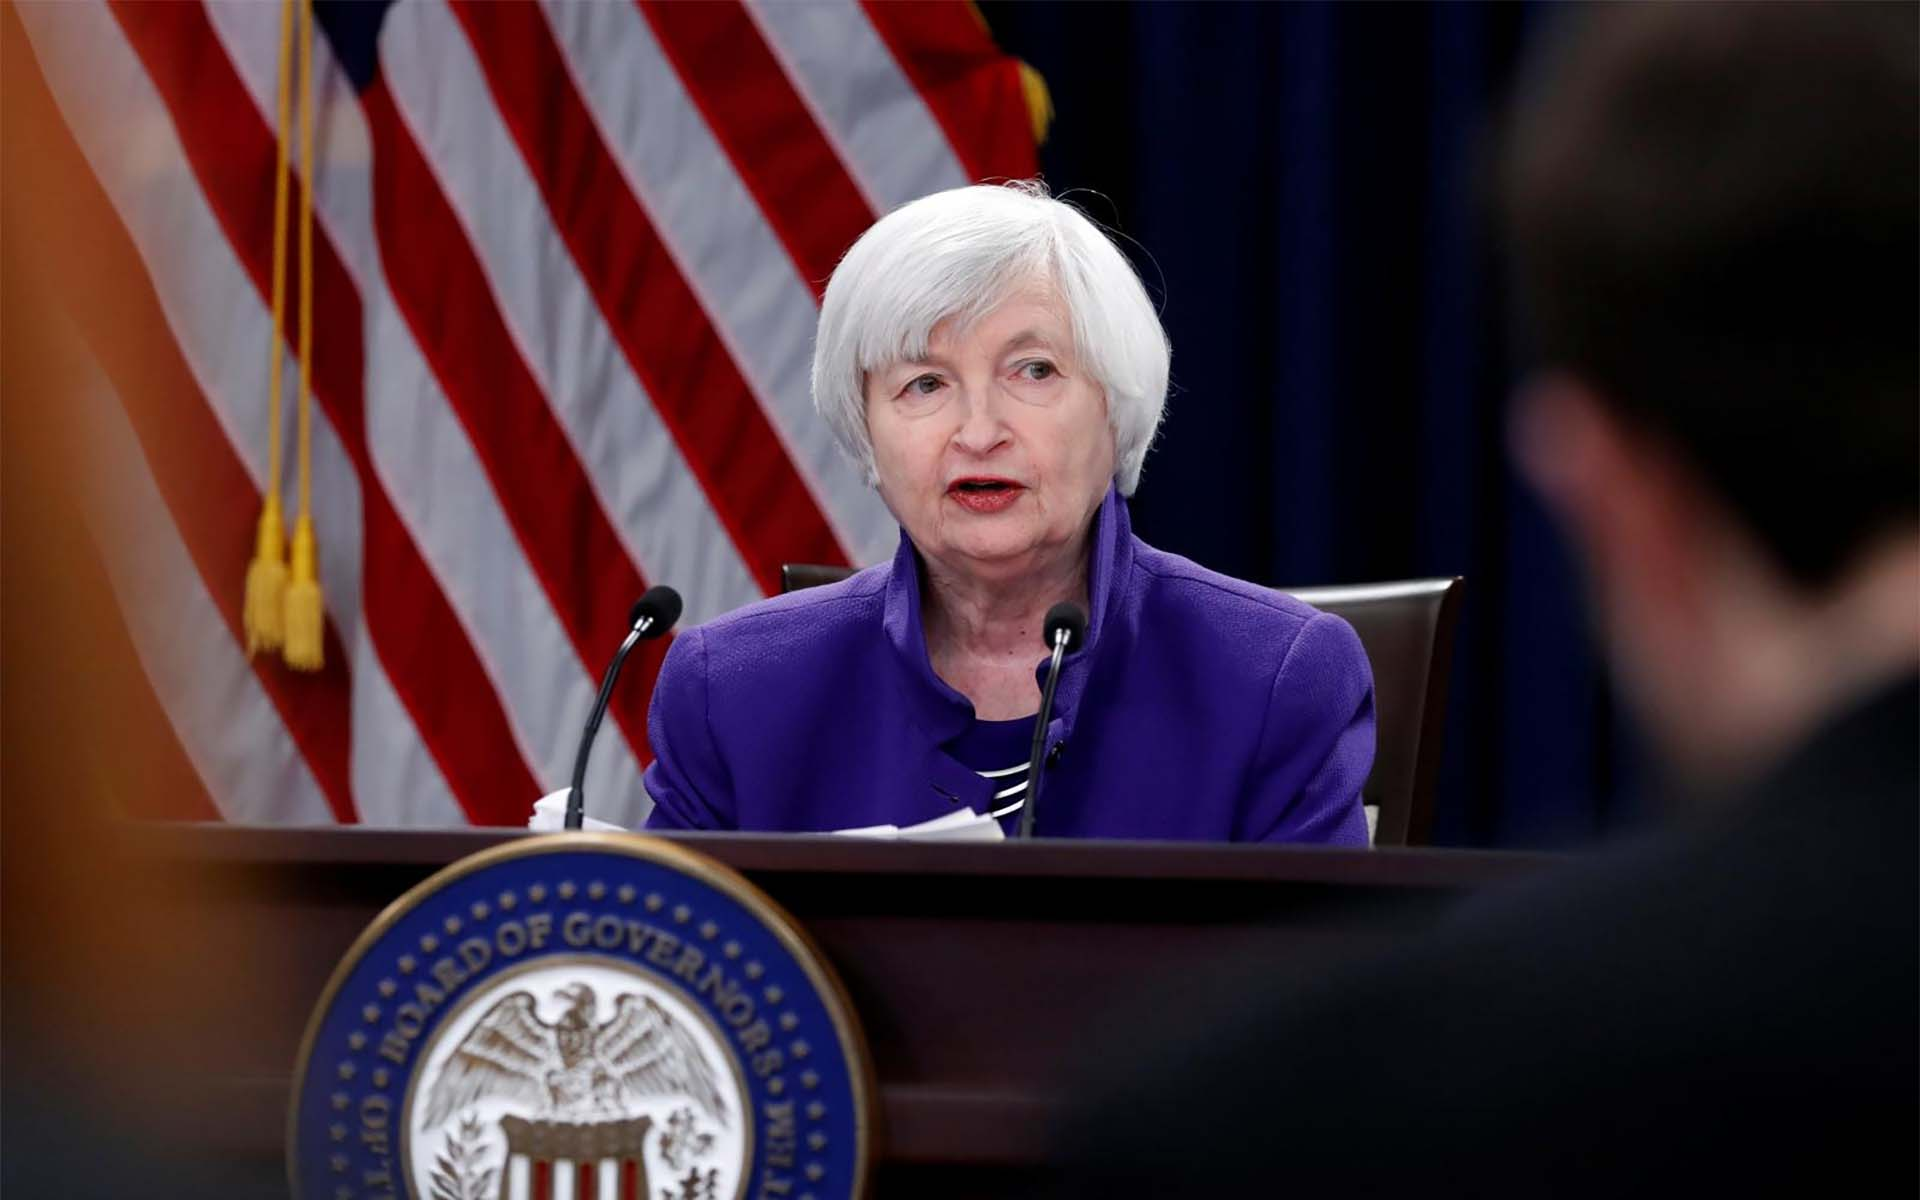 U.S. Federal Reserve Chair Janet Yellen Downplays Bitcoin